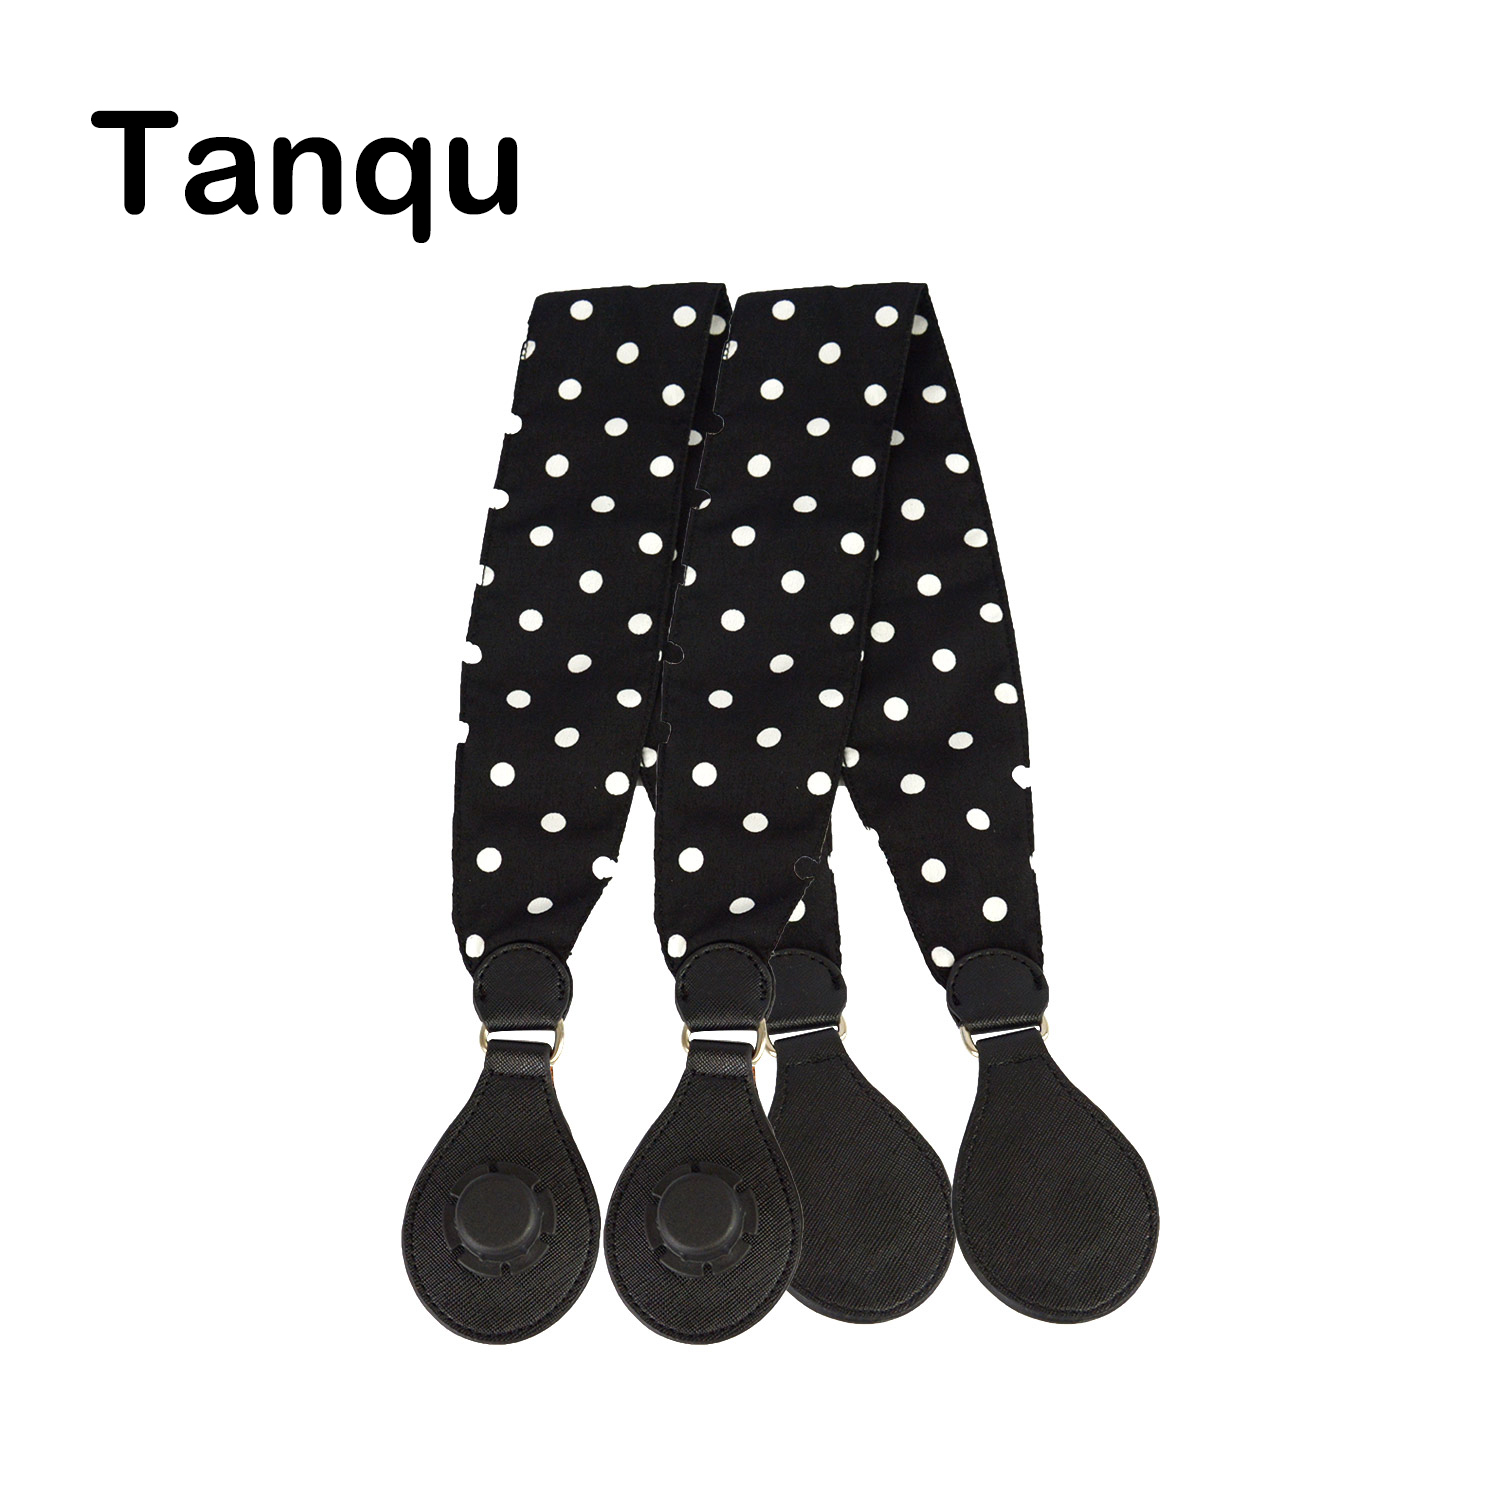 Tanqu 1 Pair Soft Floral Fabric Handle with Drop End for Bag O Bag Handles for EVA Obag Handbag Women's Bags tanqu diamond shaped variable handle for obag long adjustable handles with drop buckle for o bag for eva bag body